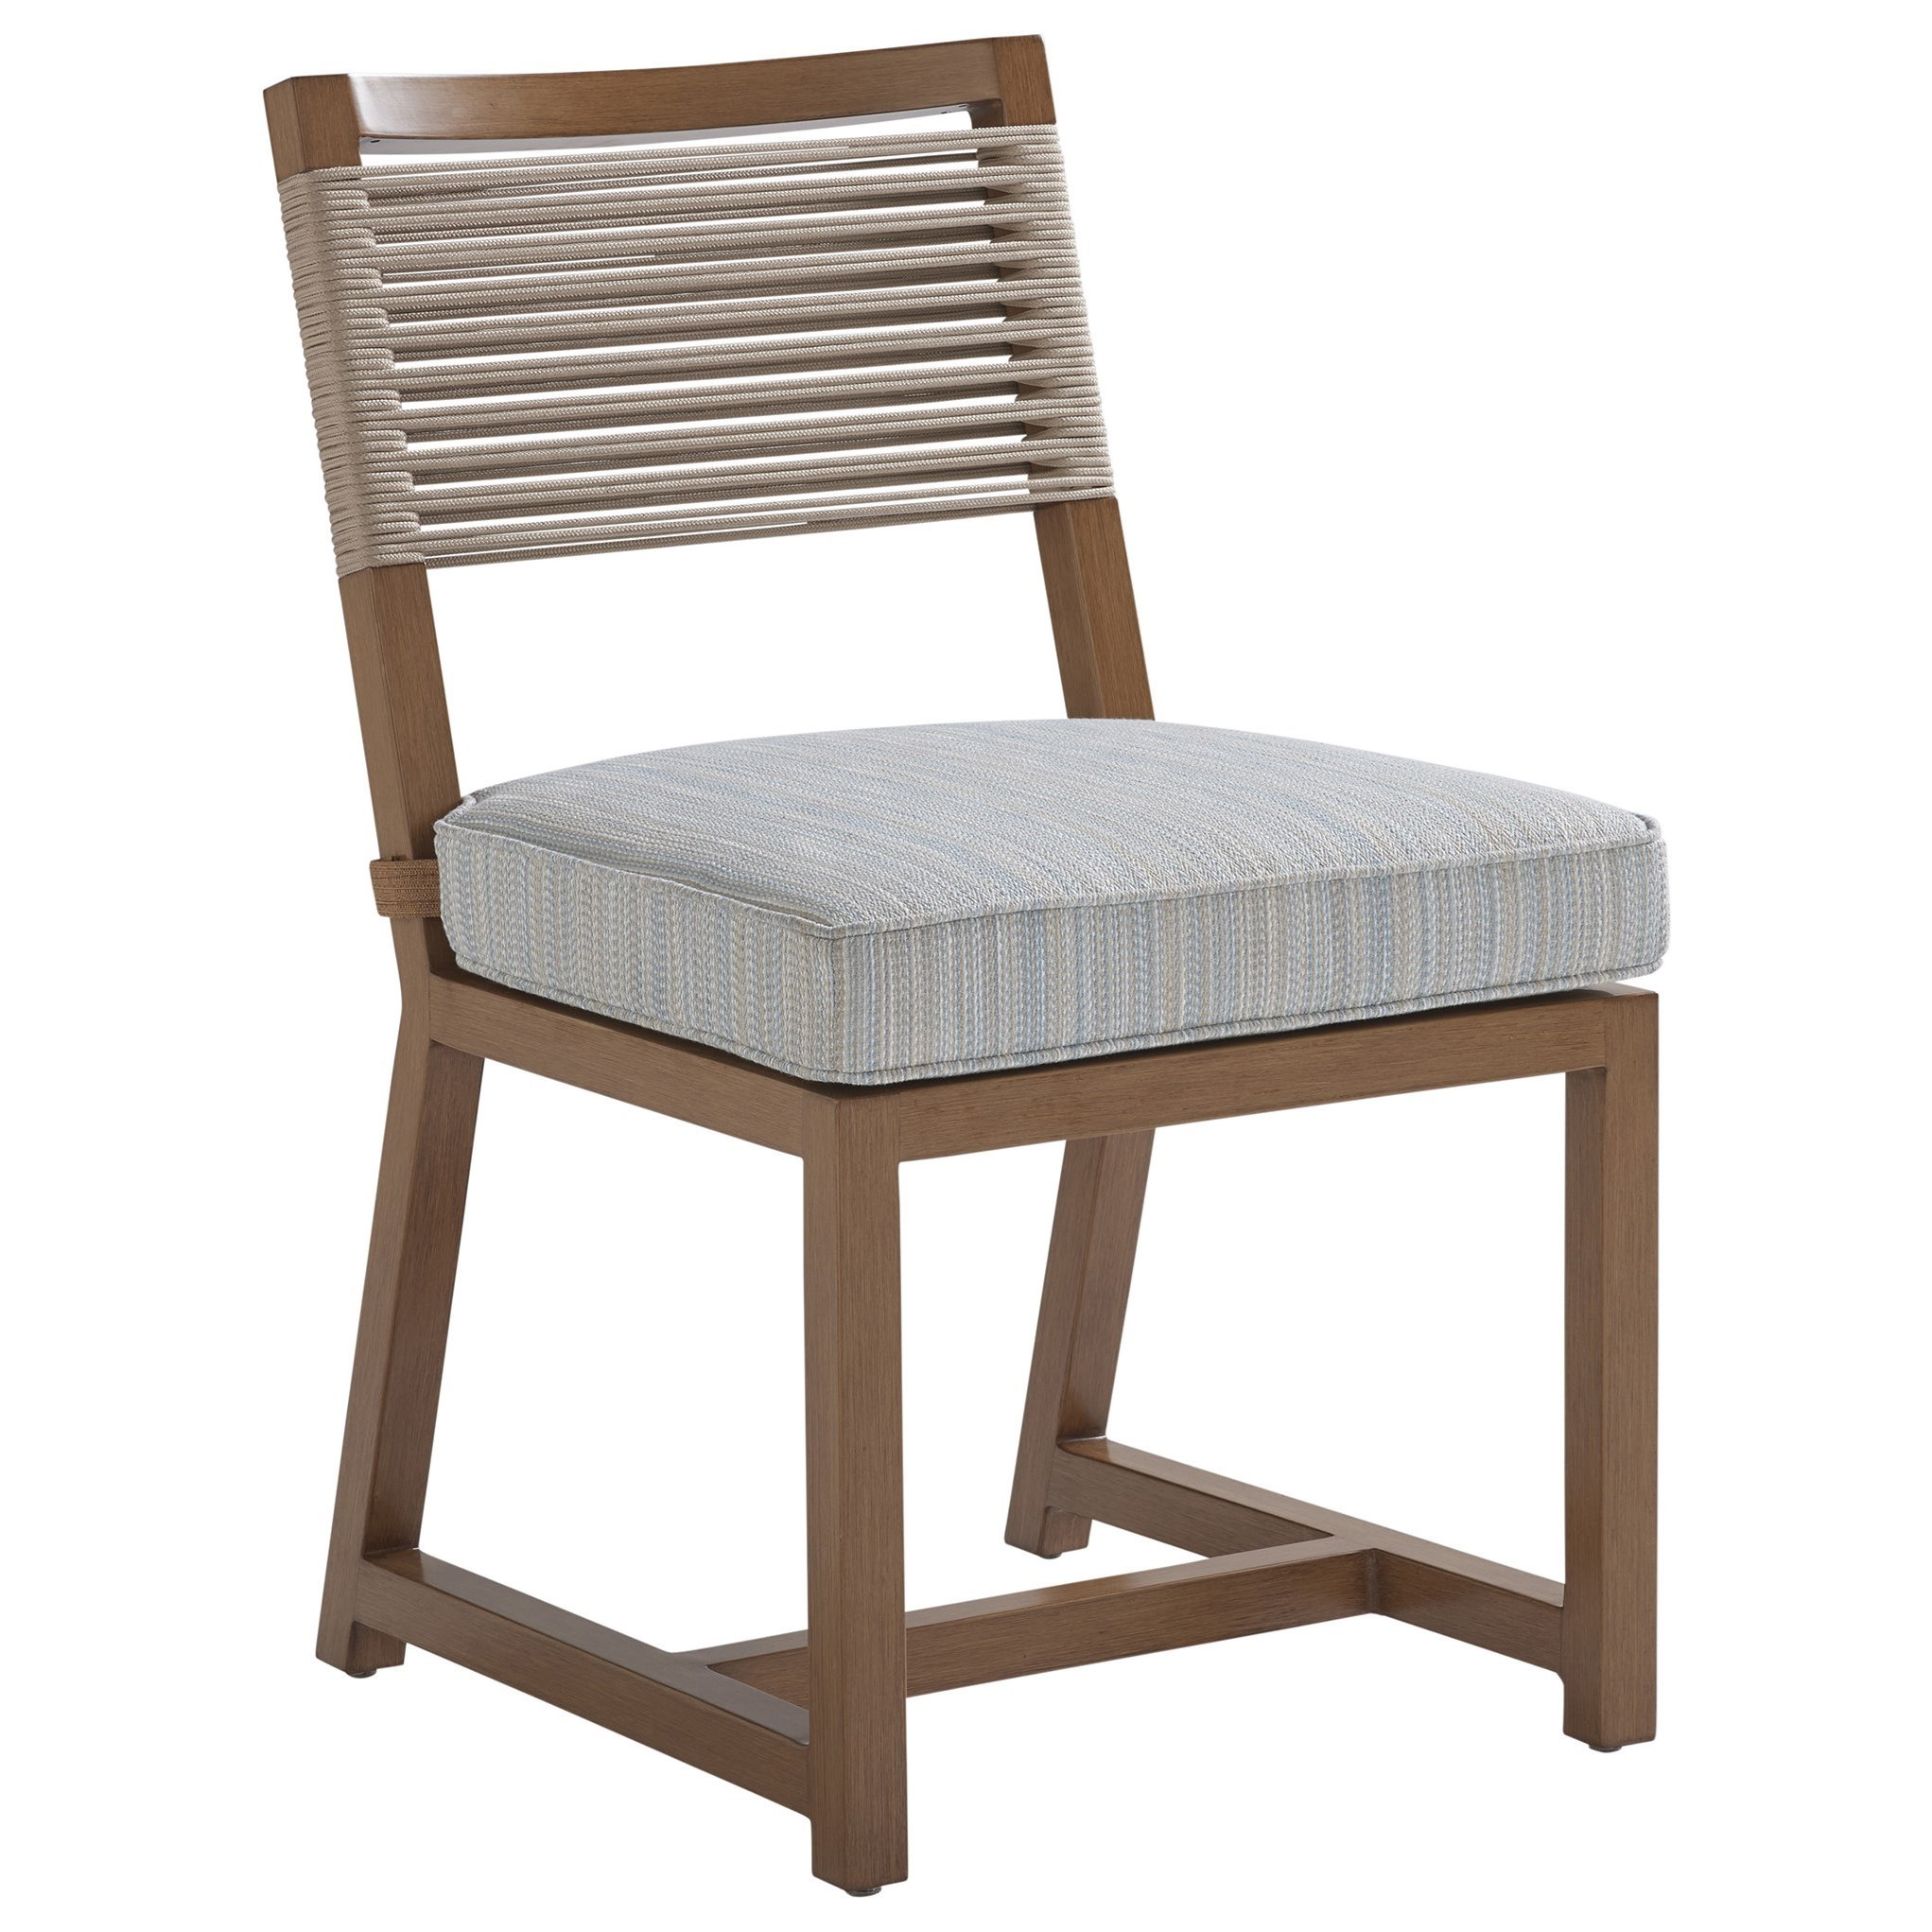 St Tropez Side Dining Chair by Tommy Bahama Outdoor Living at Baer's Furniture